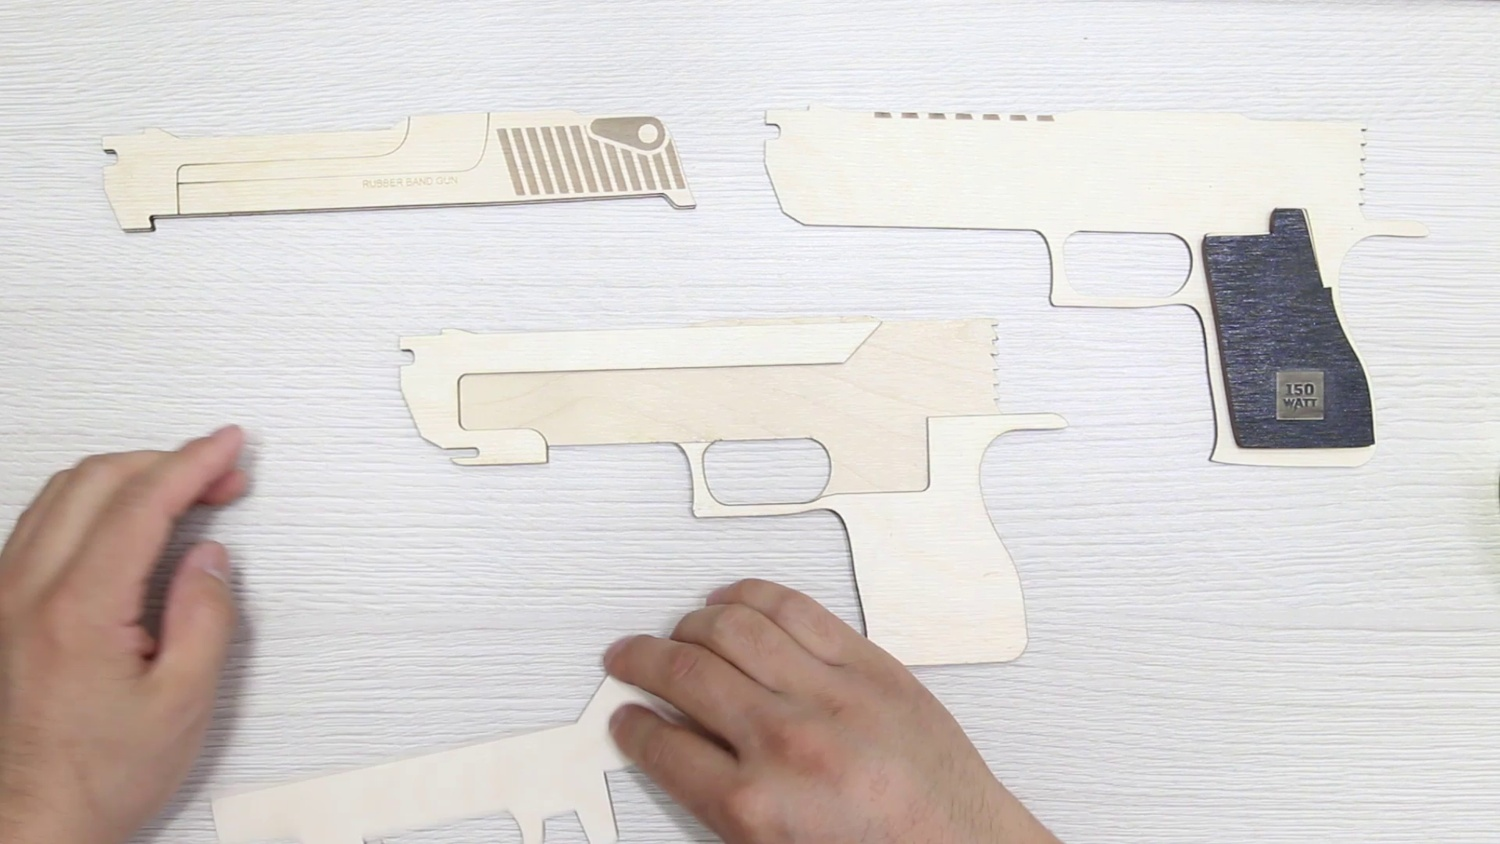 Laser Cut Rubber Band Gun 3mm Plywood DXF File